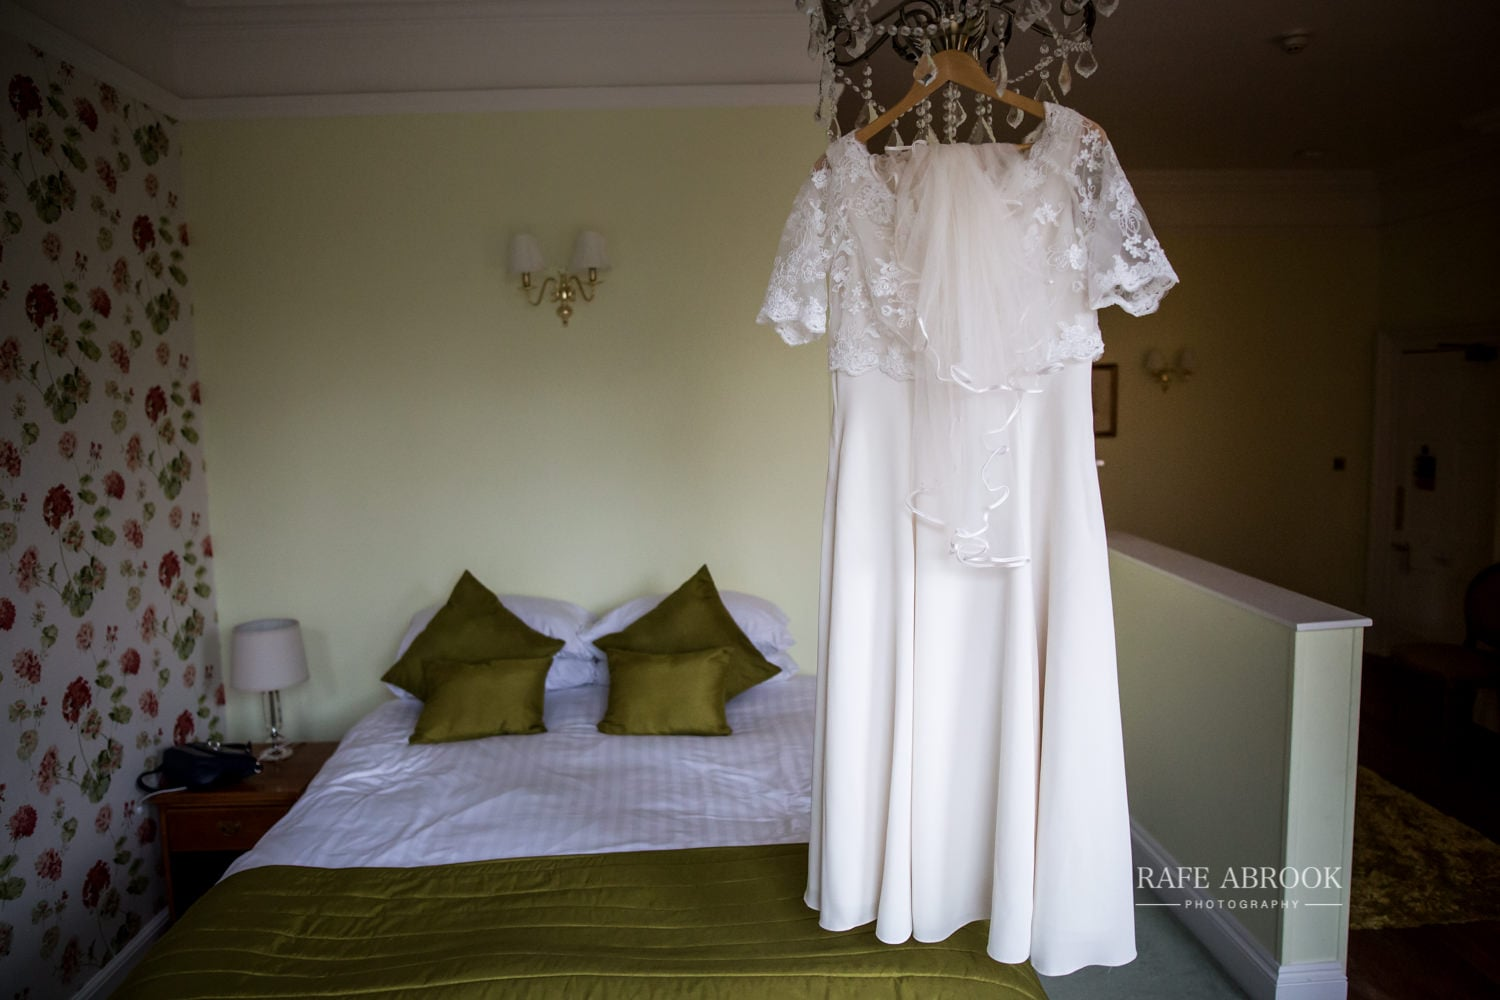 woodland manor hotel clapham bedford wedding hertfordshire wedding photographer-1017.jpg